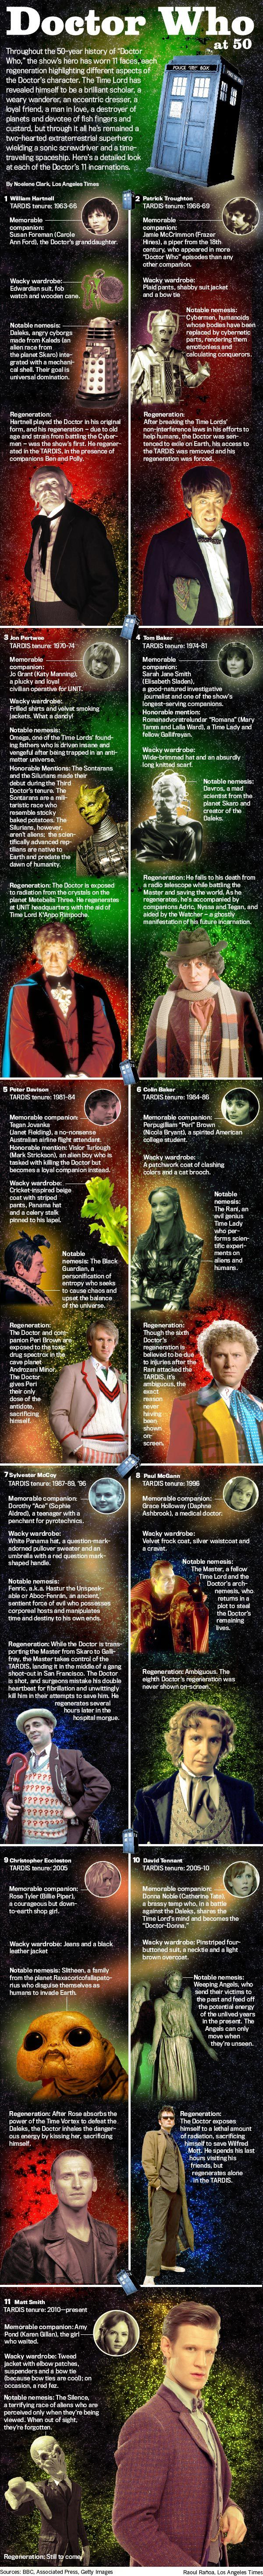 'Doctor Who' at 50: Meet the 11 faces of the Time Lord | Hero Complex – movies, comics, pop culture – Los Angeles Times